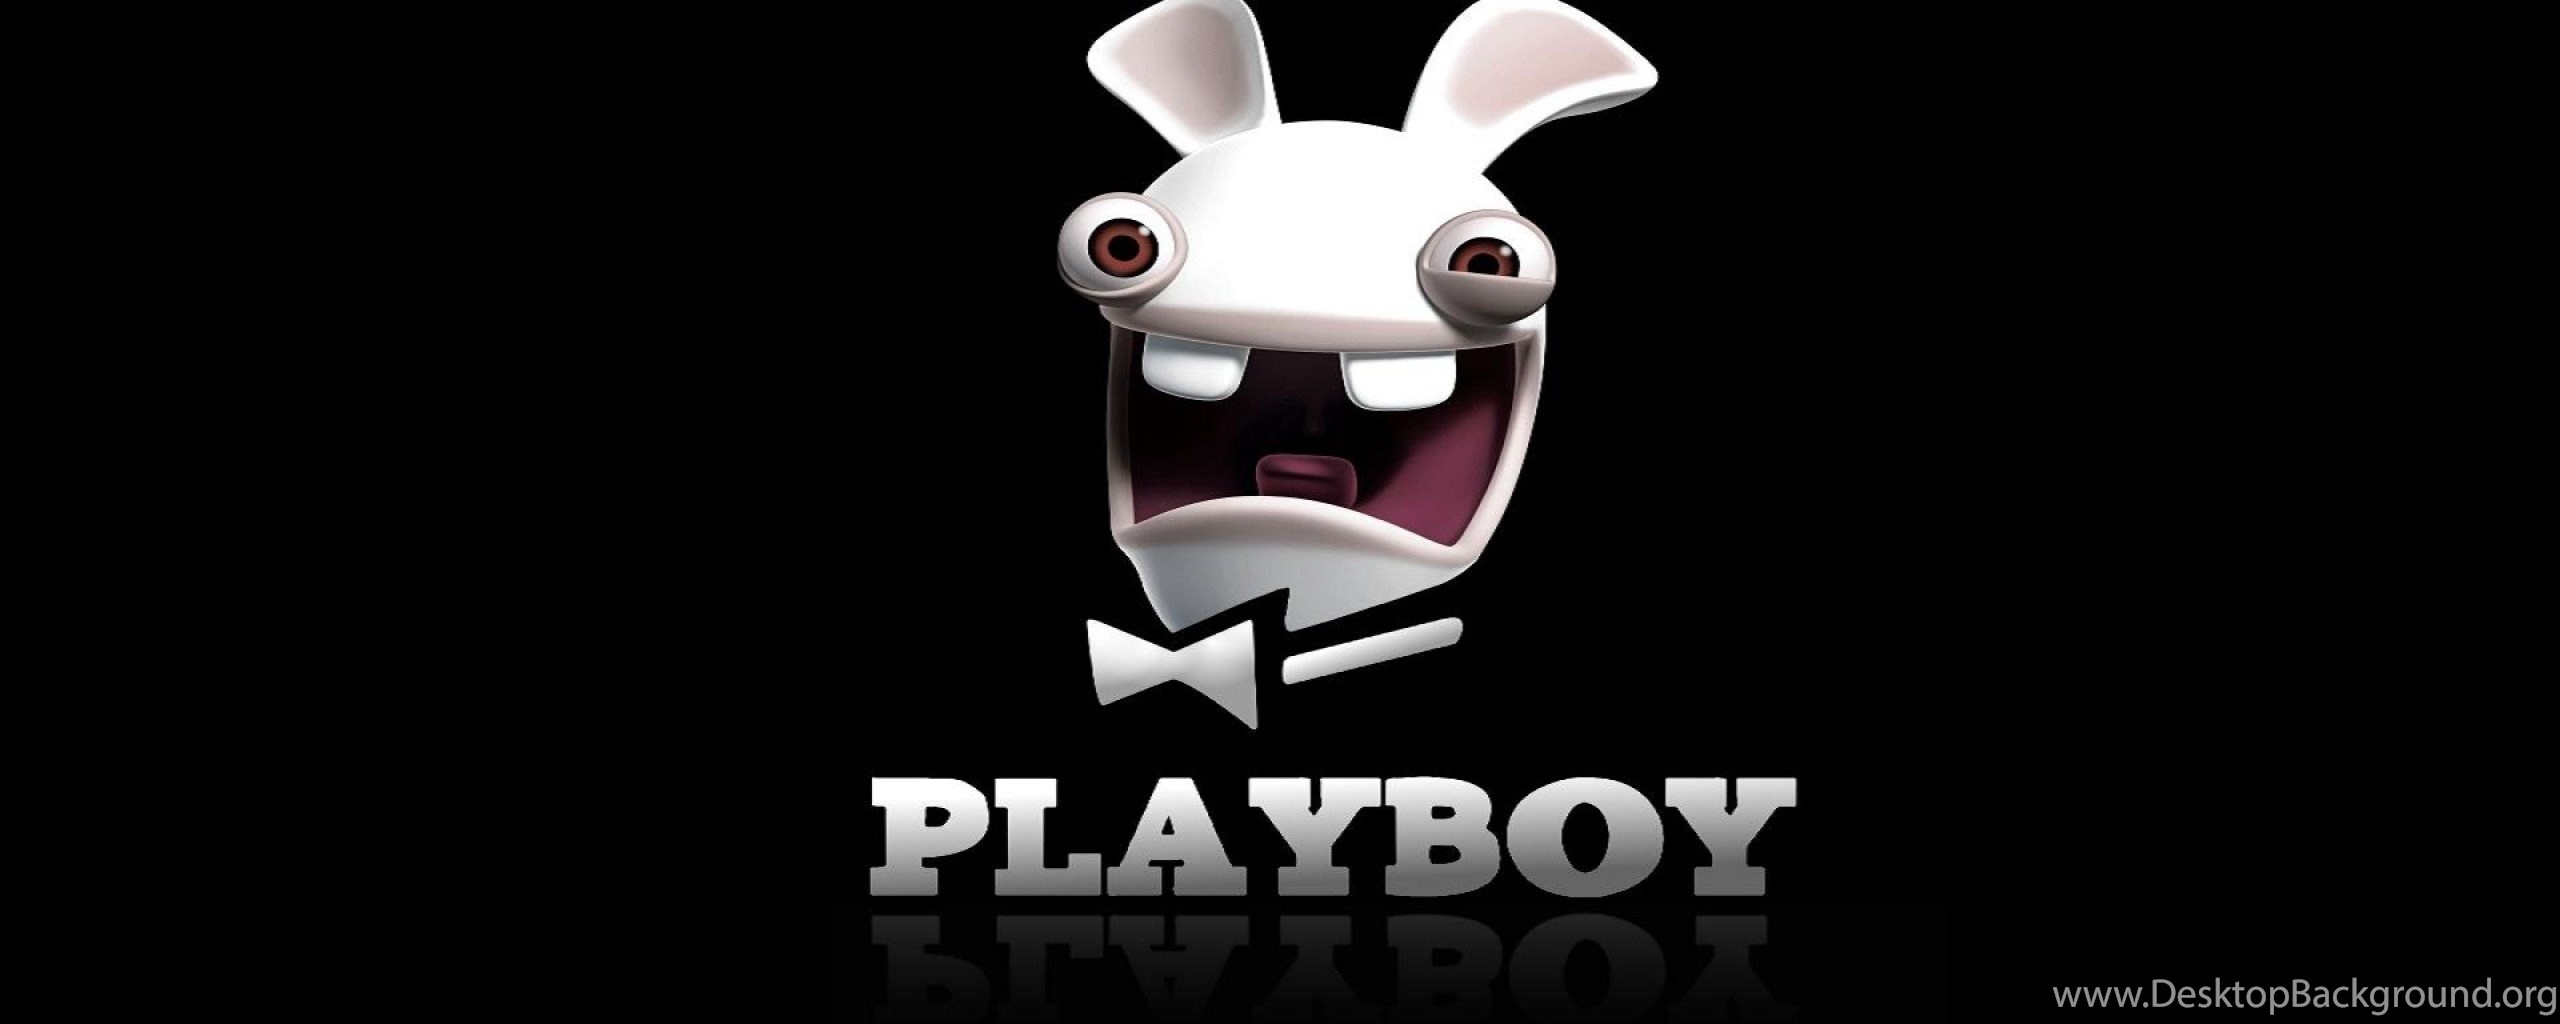 play boy wallpaper